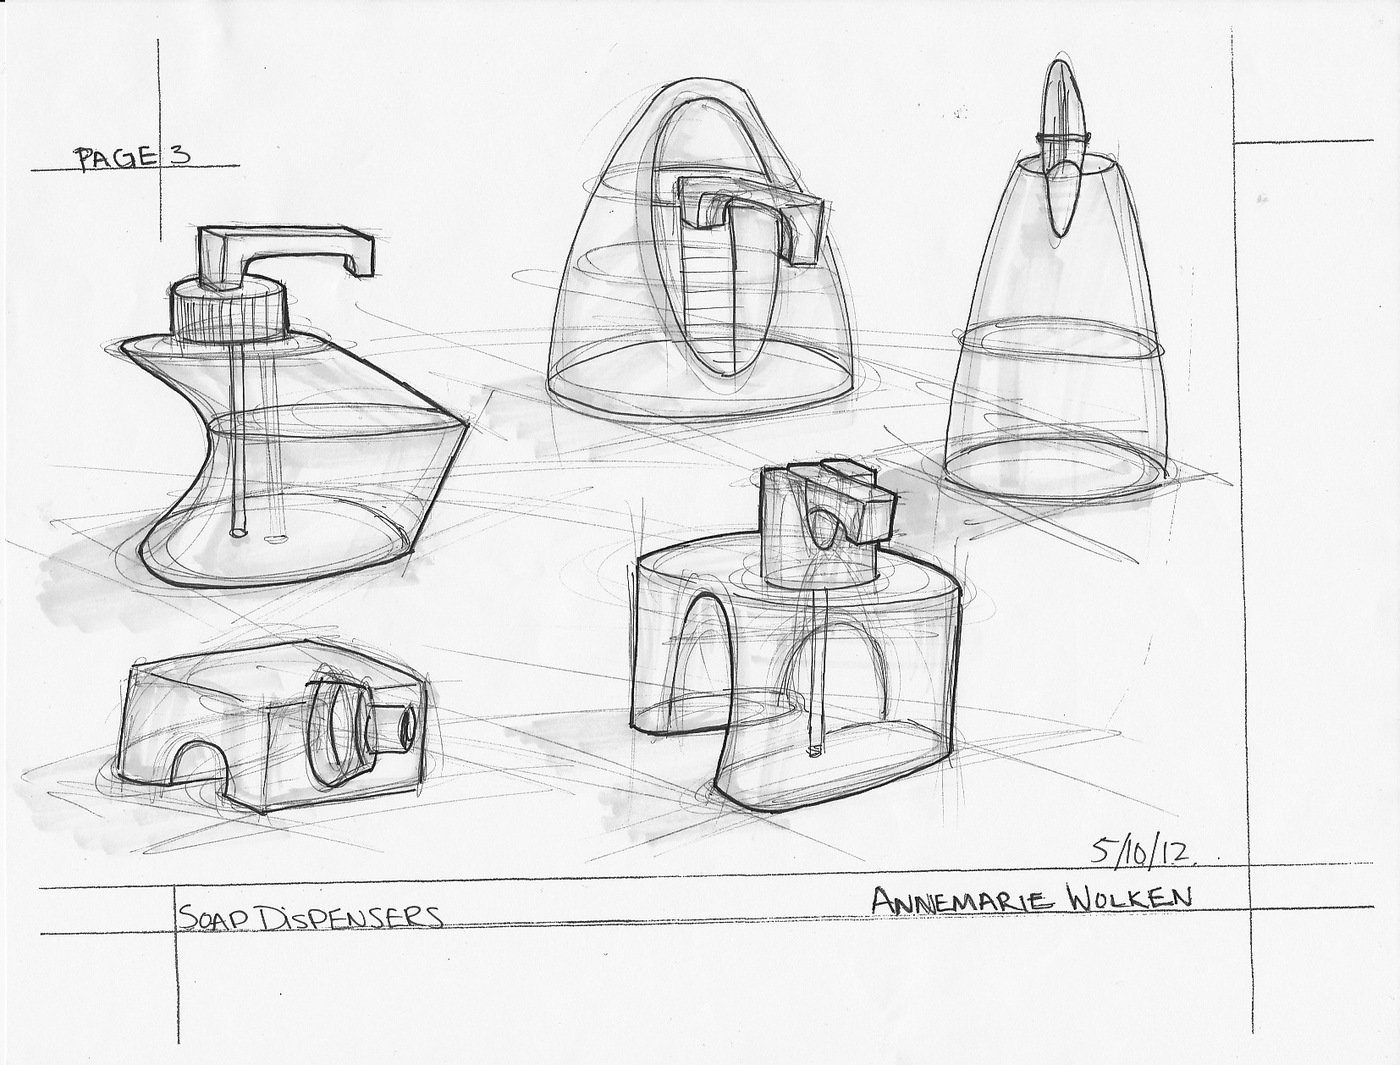 Sketch Dump: Soap Dispensers by Annemarie Wolken at